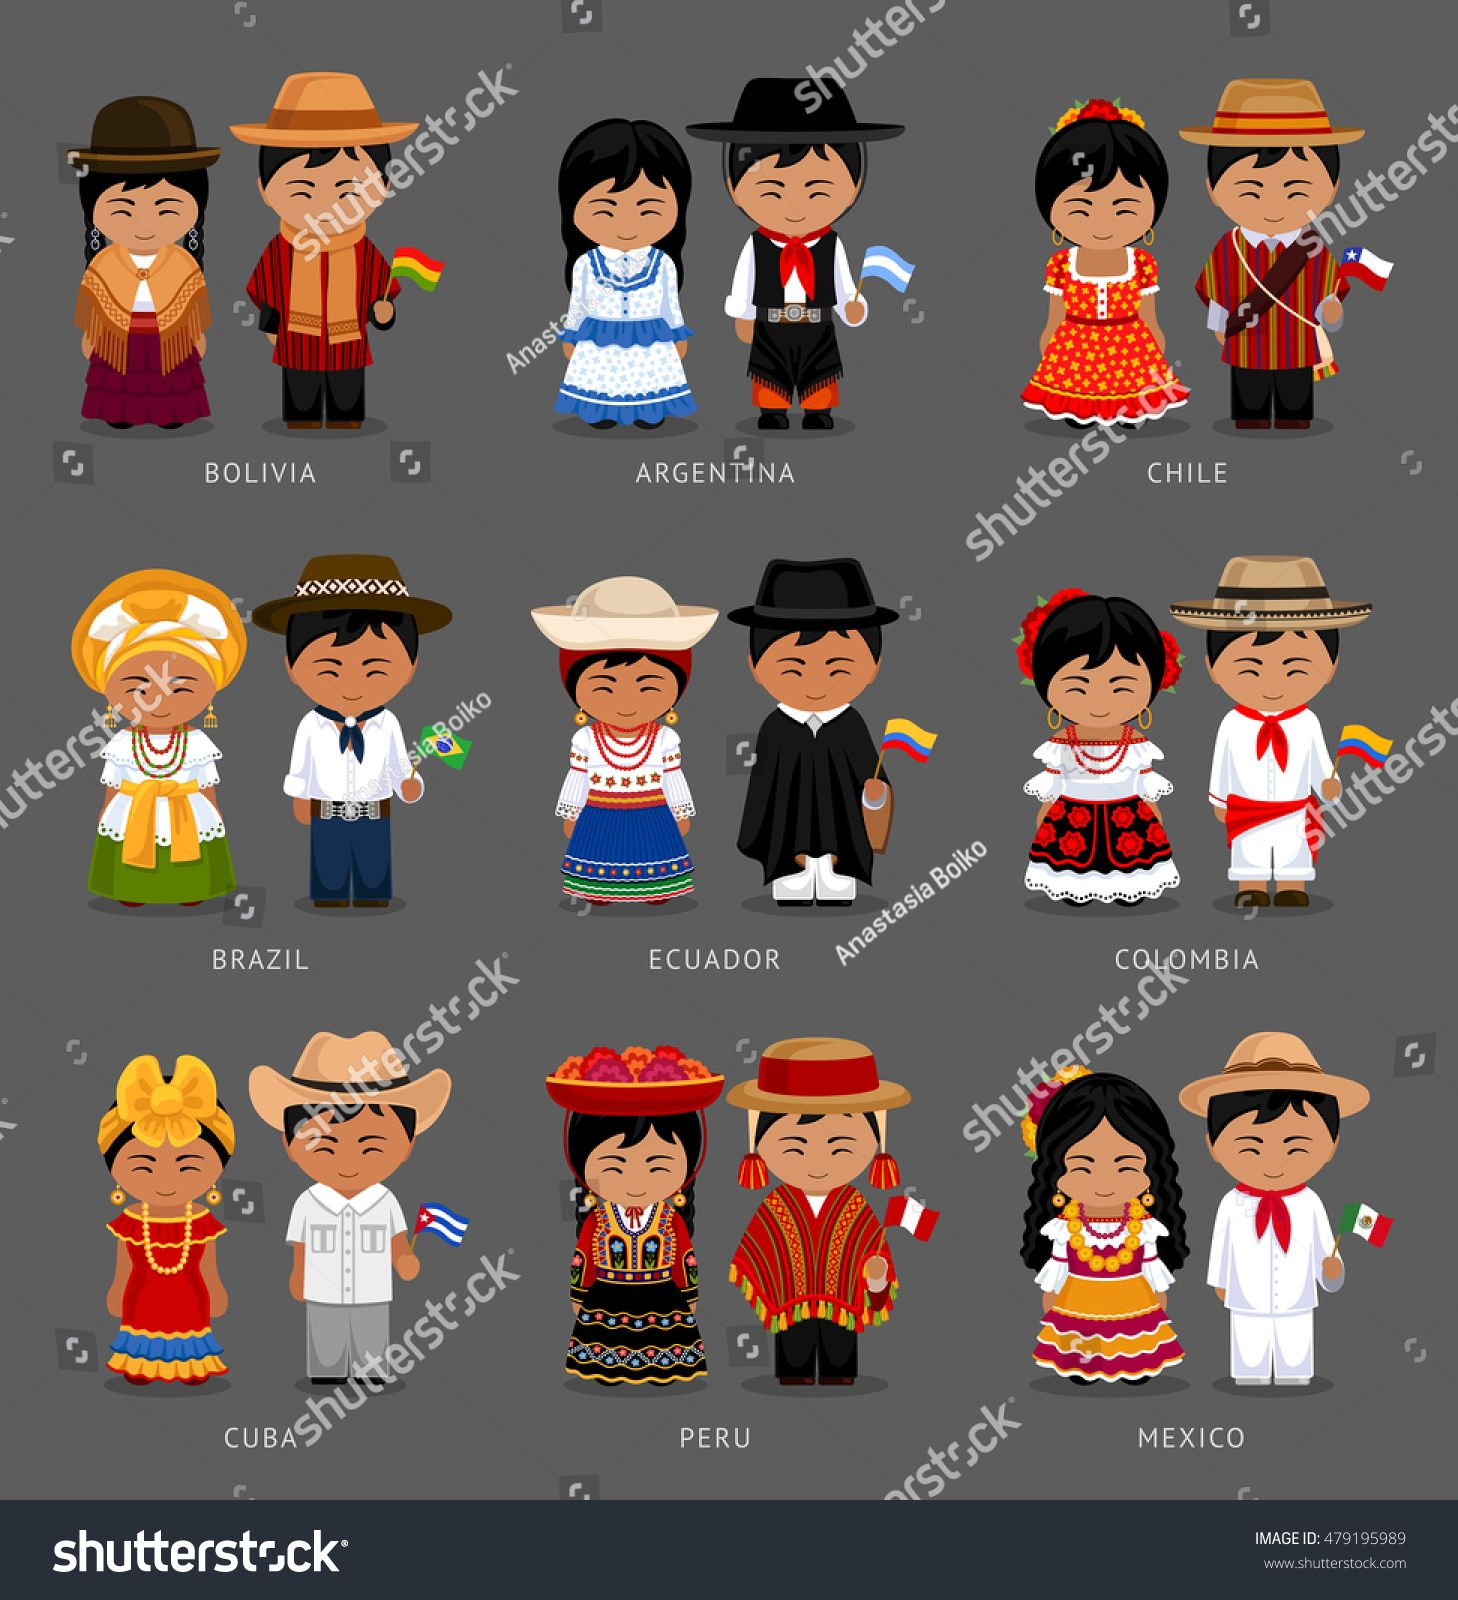 People In National Dress Bolivia Argentina Chile Brazil Ecuador Colombia Cuba Peru